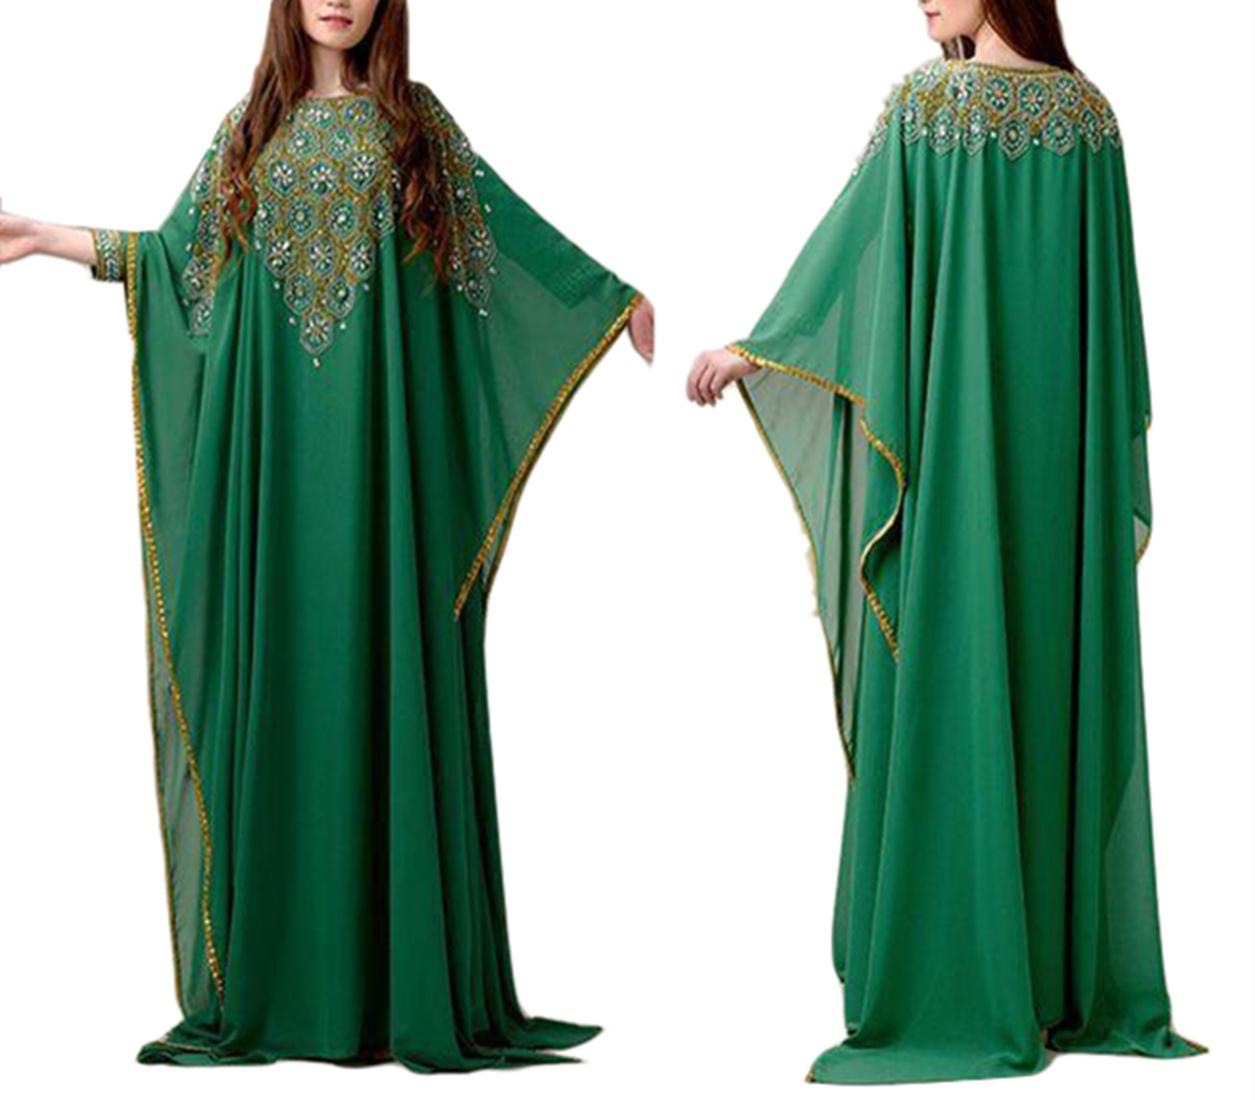 green pond muslim women dating site Plenty of fish basic search search by gender, age, intent, sign, ethnicity, location, display type, profiles, last visit and more terms.